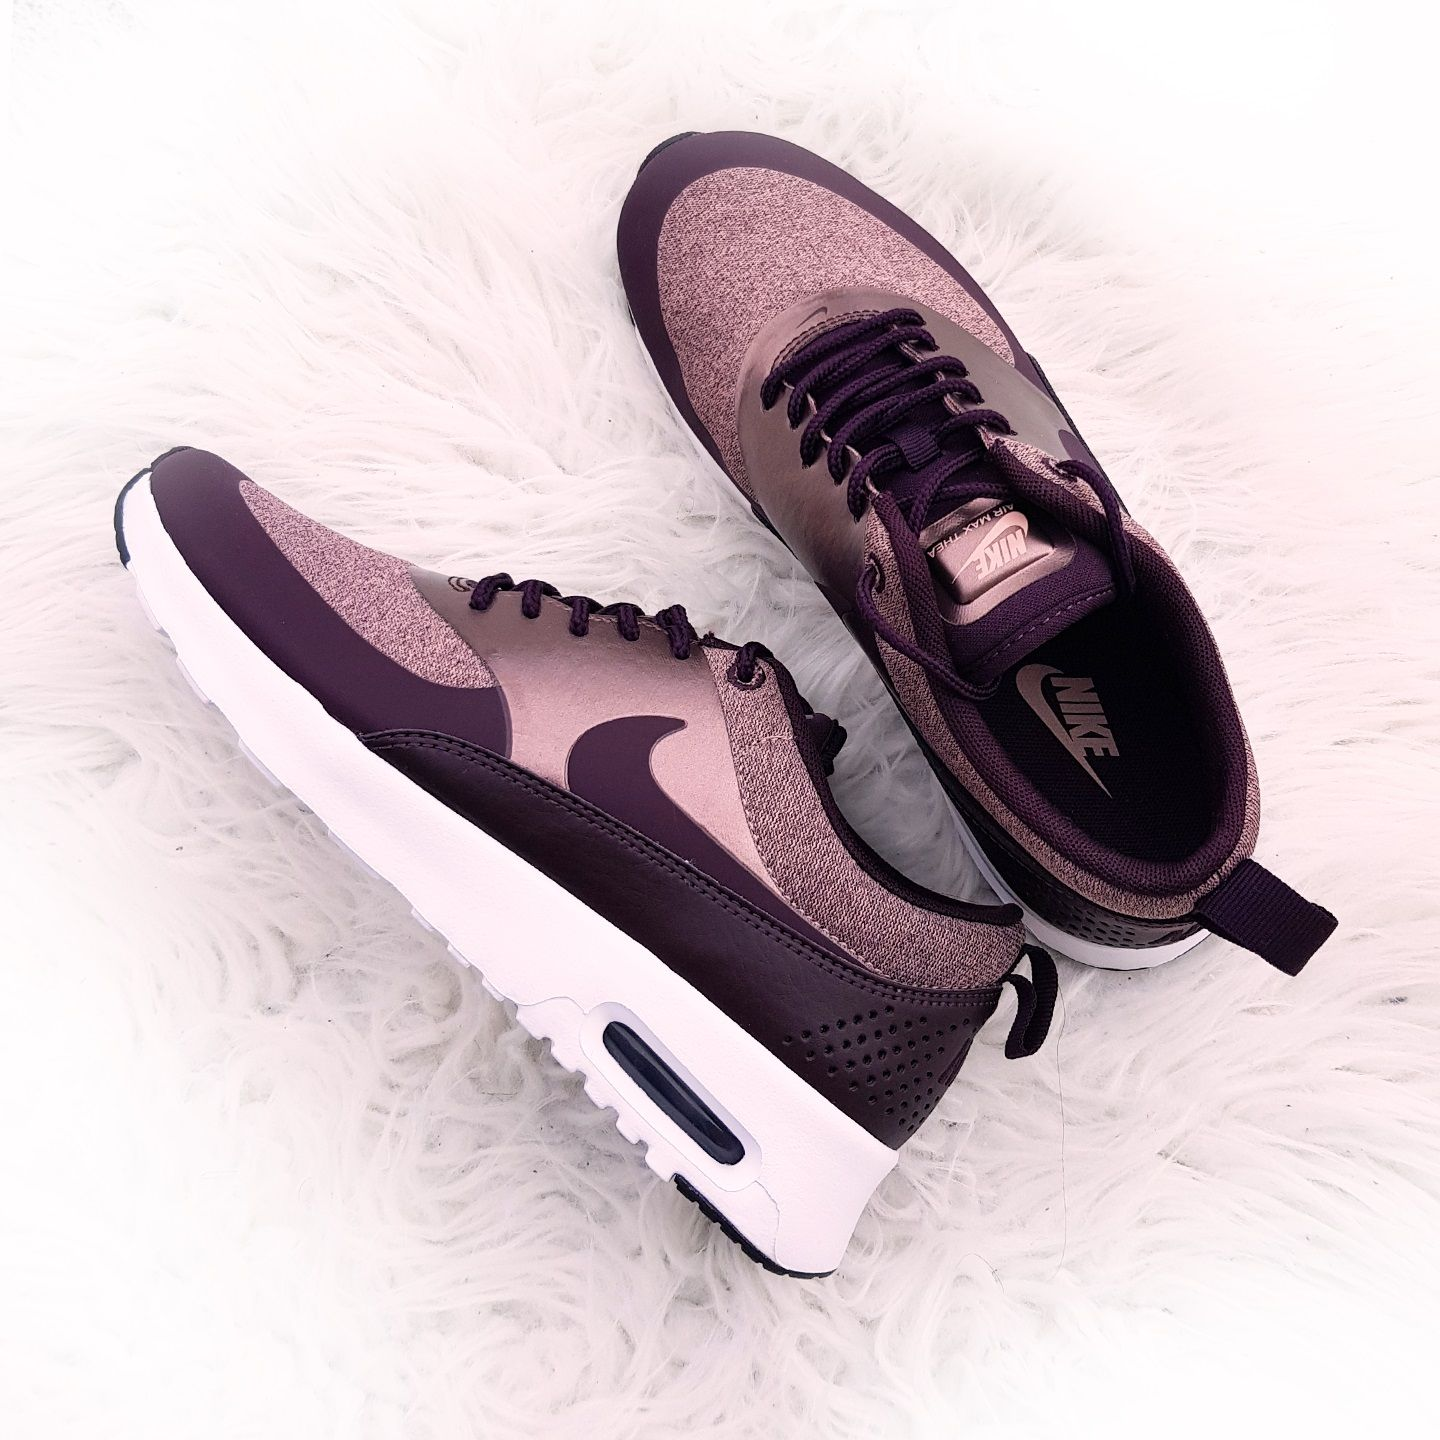 pick up cd15d 766d9 Nike Air Max Thea Knit - Port Wine Particle Pink Schwarz Metallic Mahogany